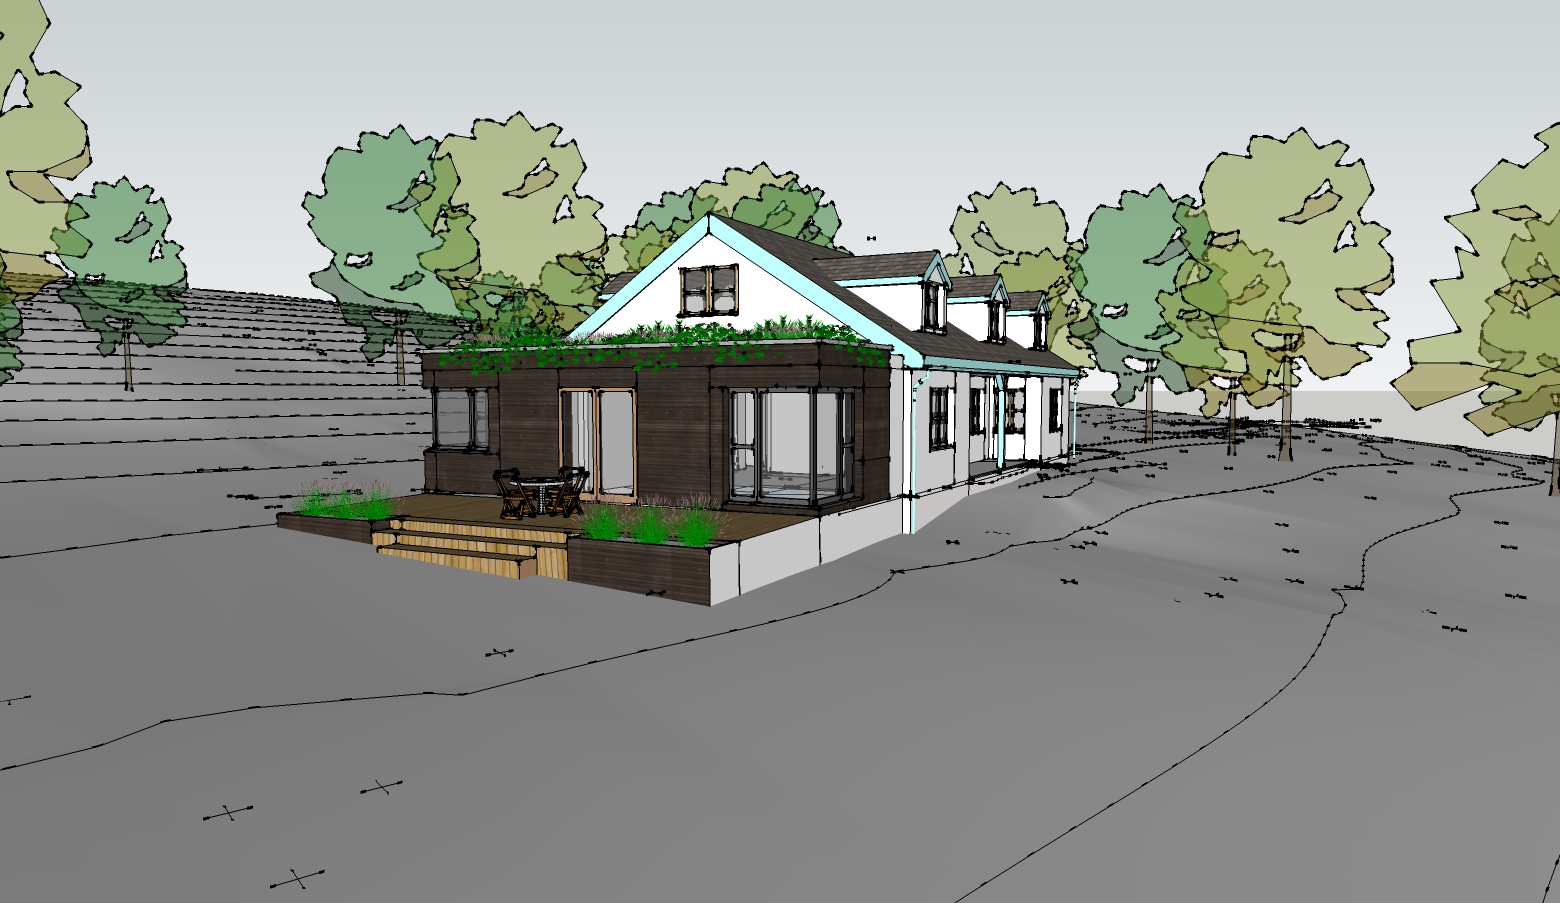 RSA commissioned to design new extension at hideaway house near Moretonhampstead – Rud Sawers Architects, Devon